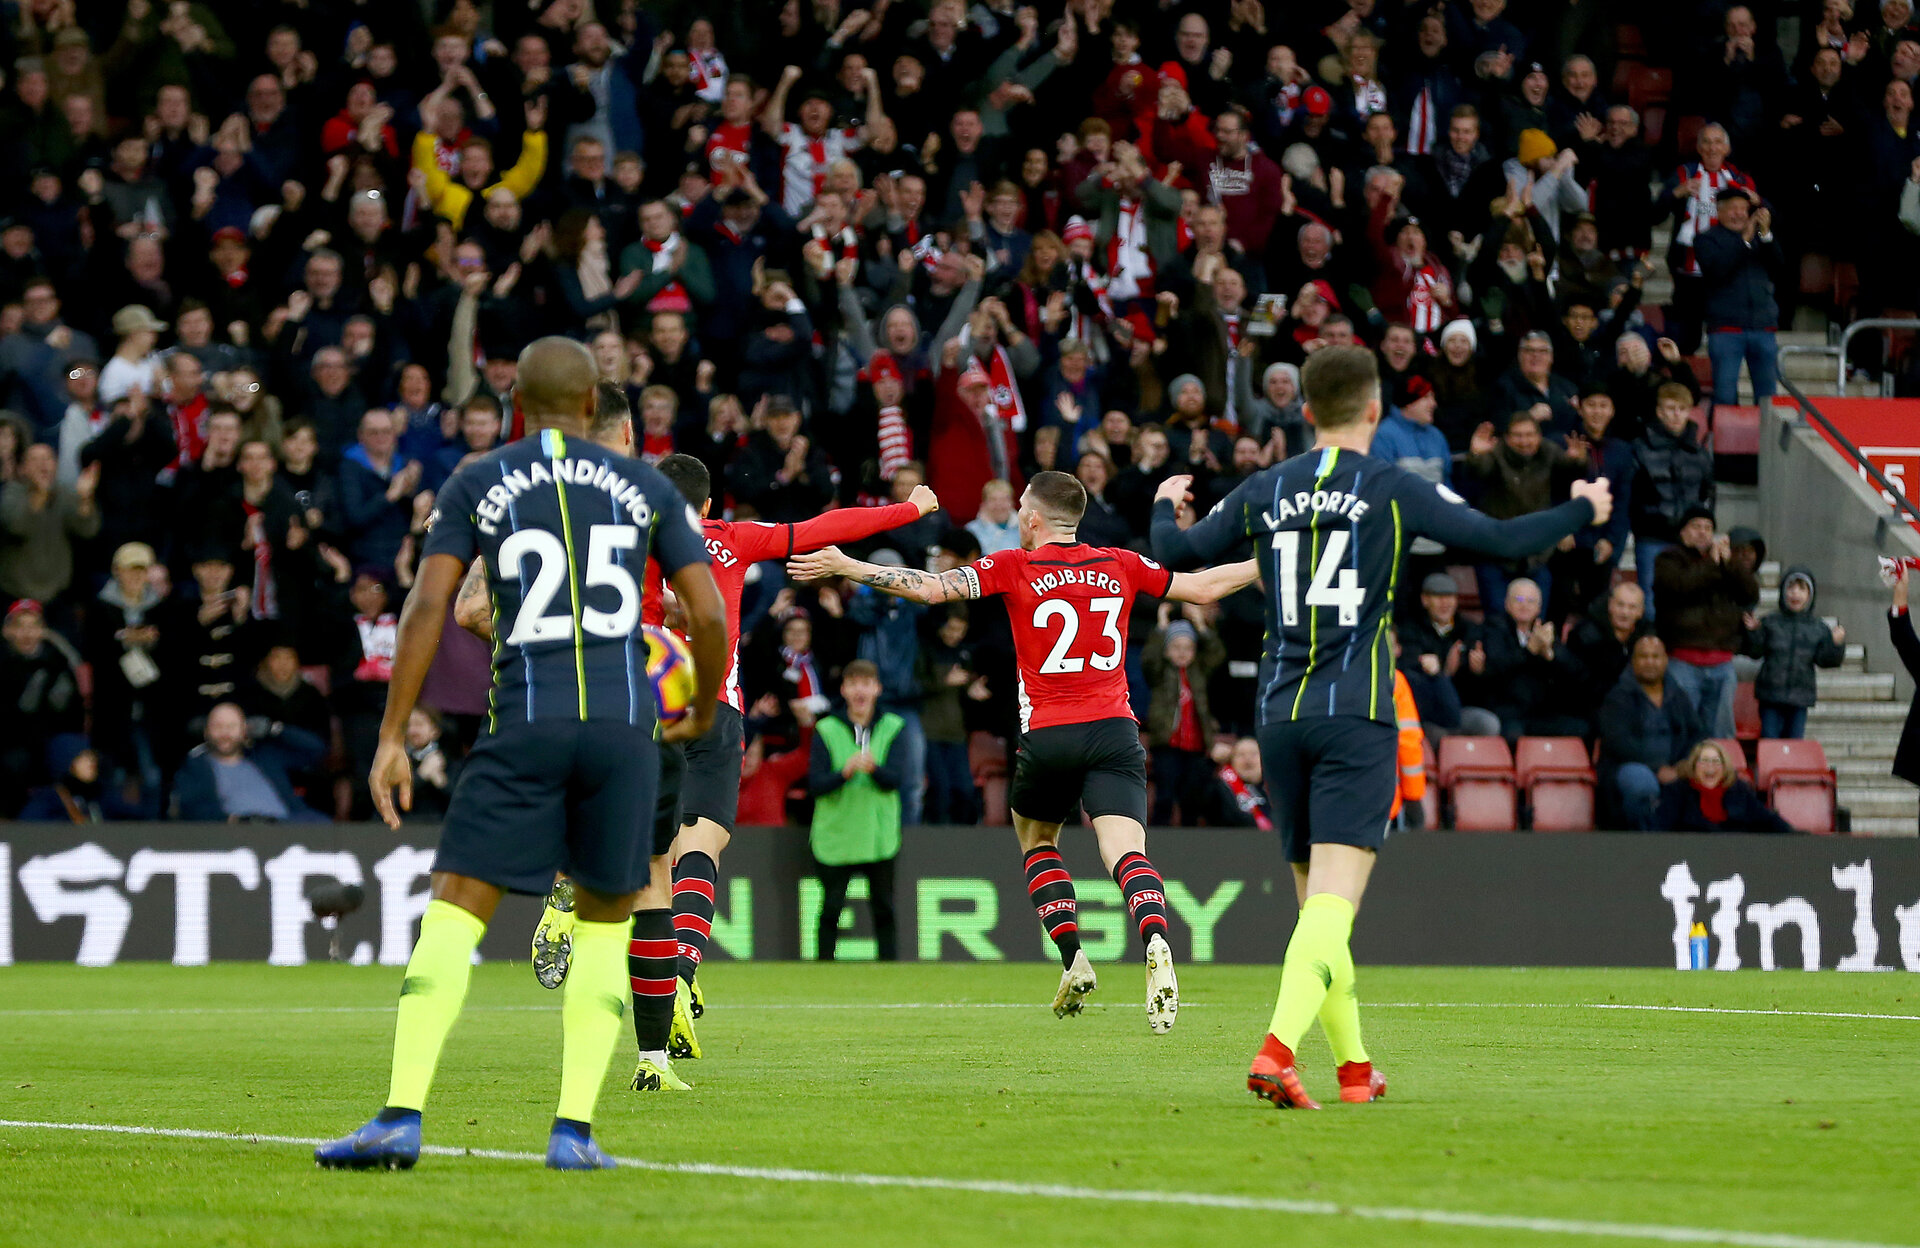 SOUTHAMPTON, ENGLAND - DECEMBER 30:  Pierre-Emile Hojbjerg of Southampton celebrates after making it  during the Premier League match between Southampton FC and Manchester City at St Mary's Stadium on December 30, 2018 in Southampton, United Kingdom. (Photo by Matt Watson/Southampton FC via Getty Images)